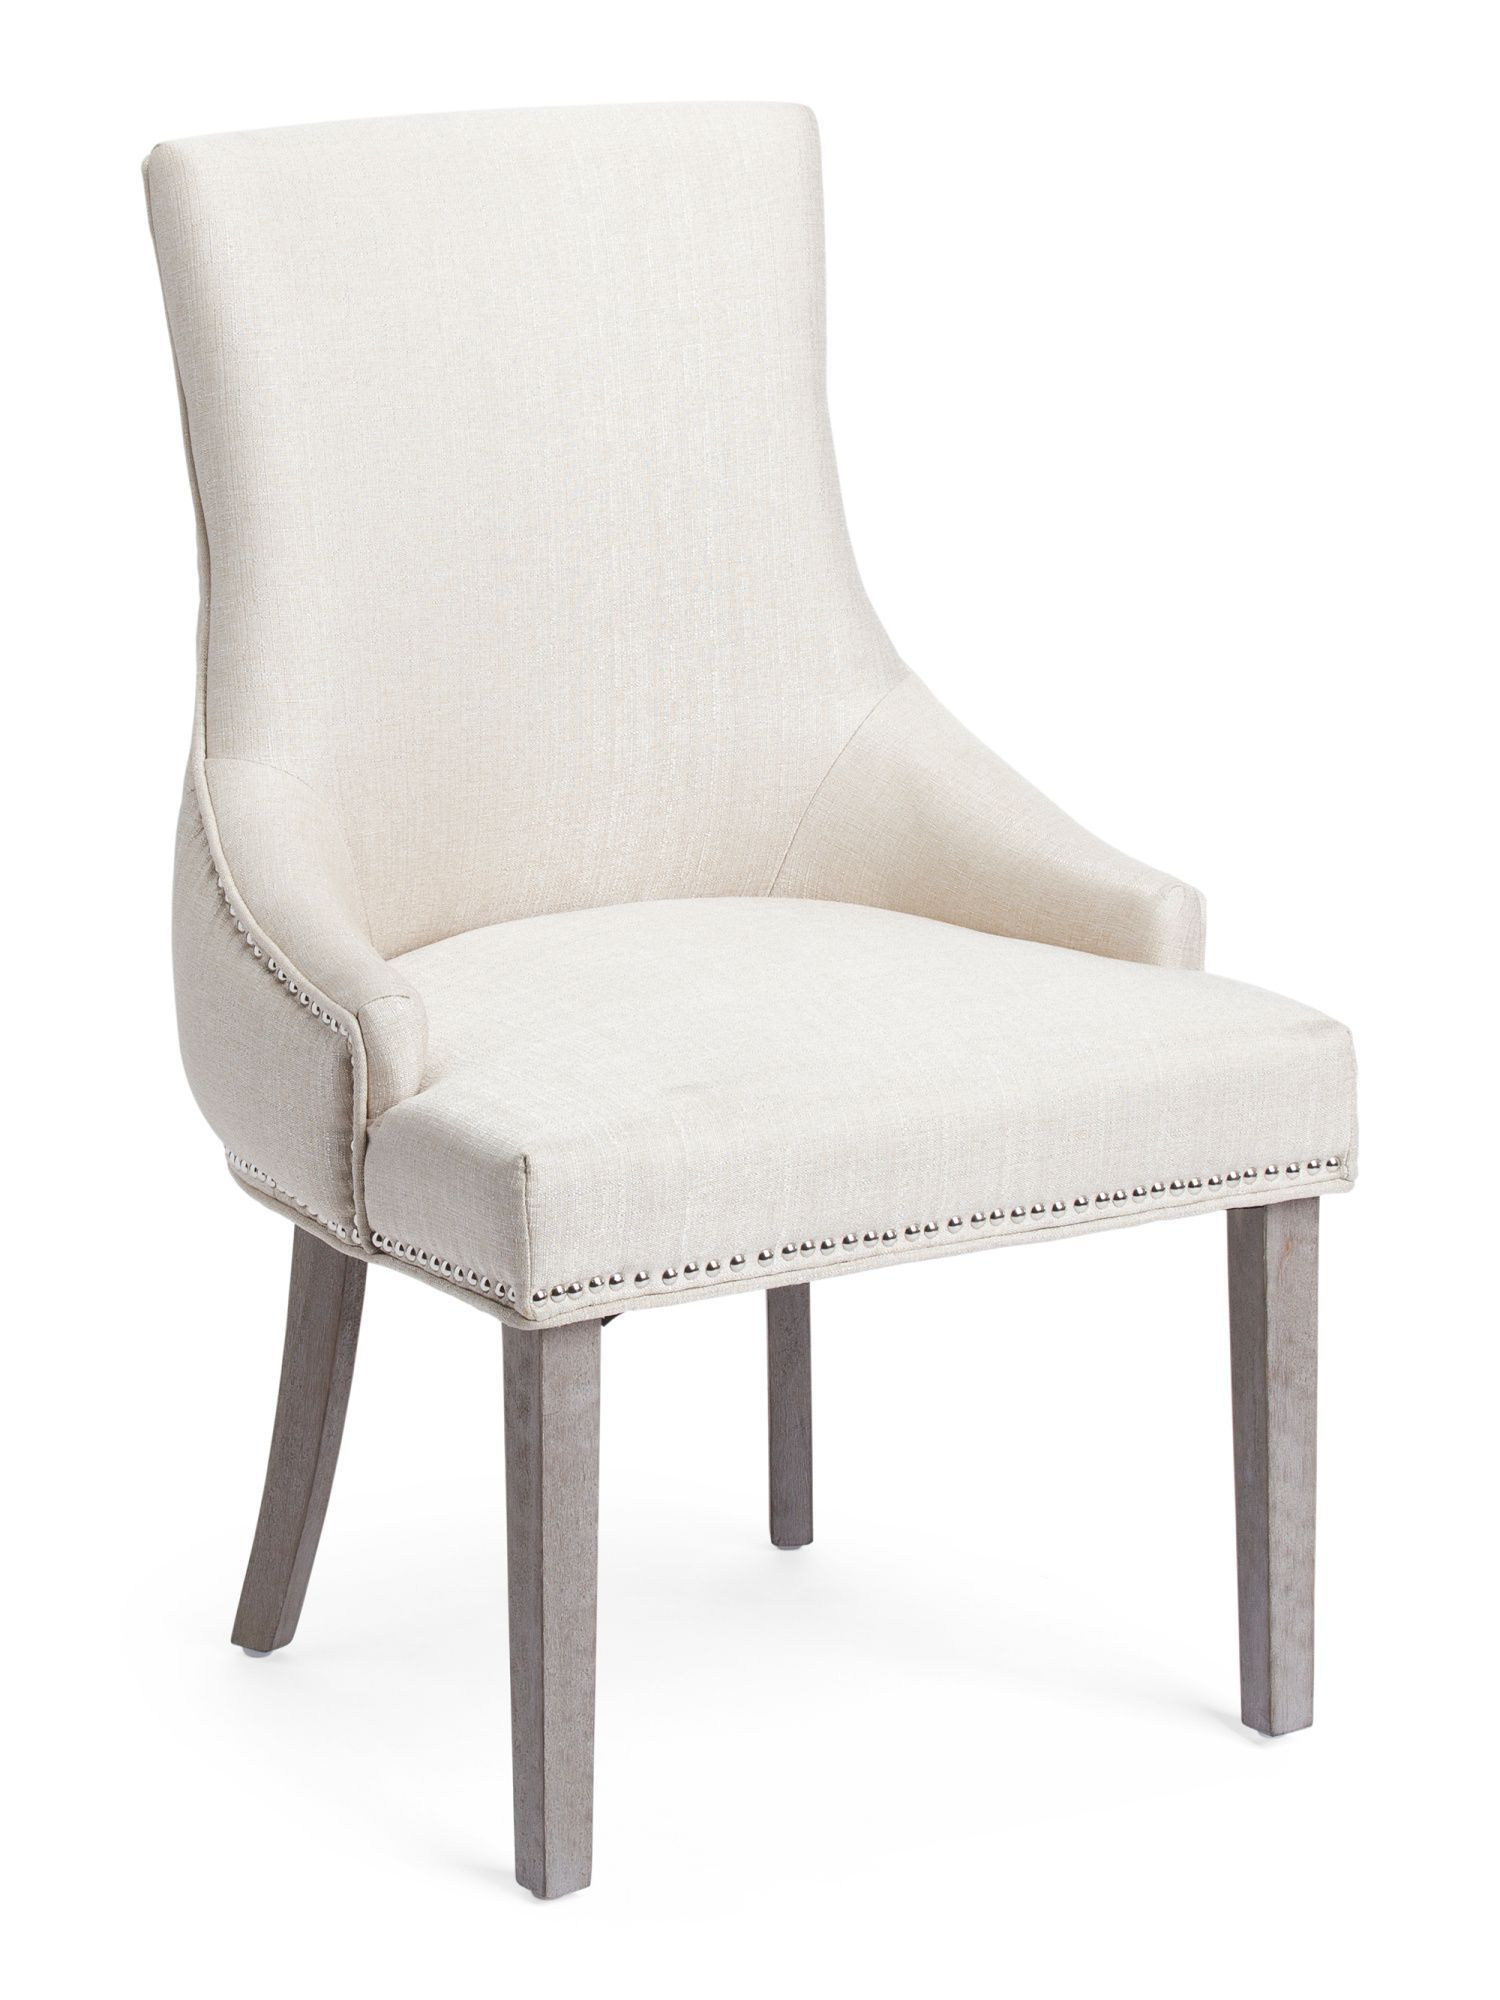 Made In India Sonya Tuxedo Chair Accent chairs, Chair